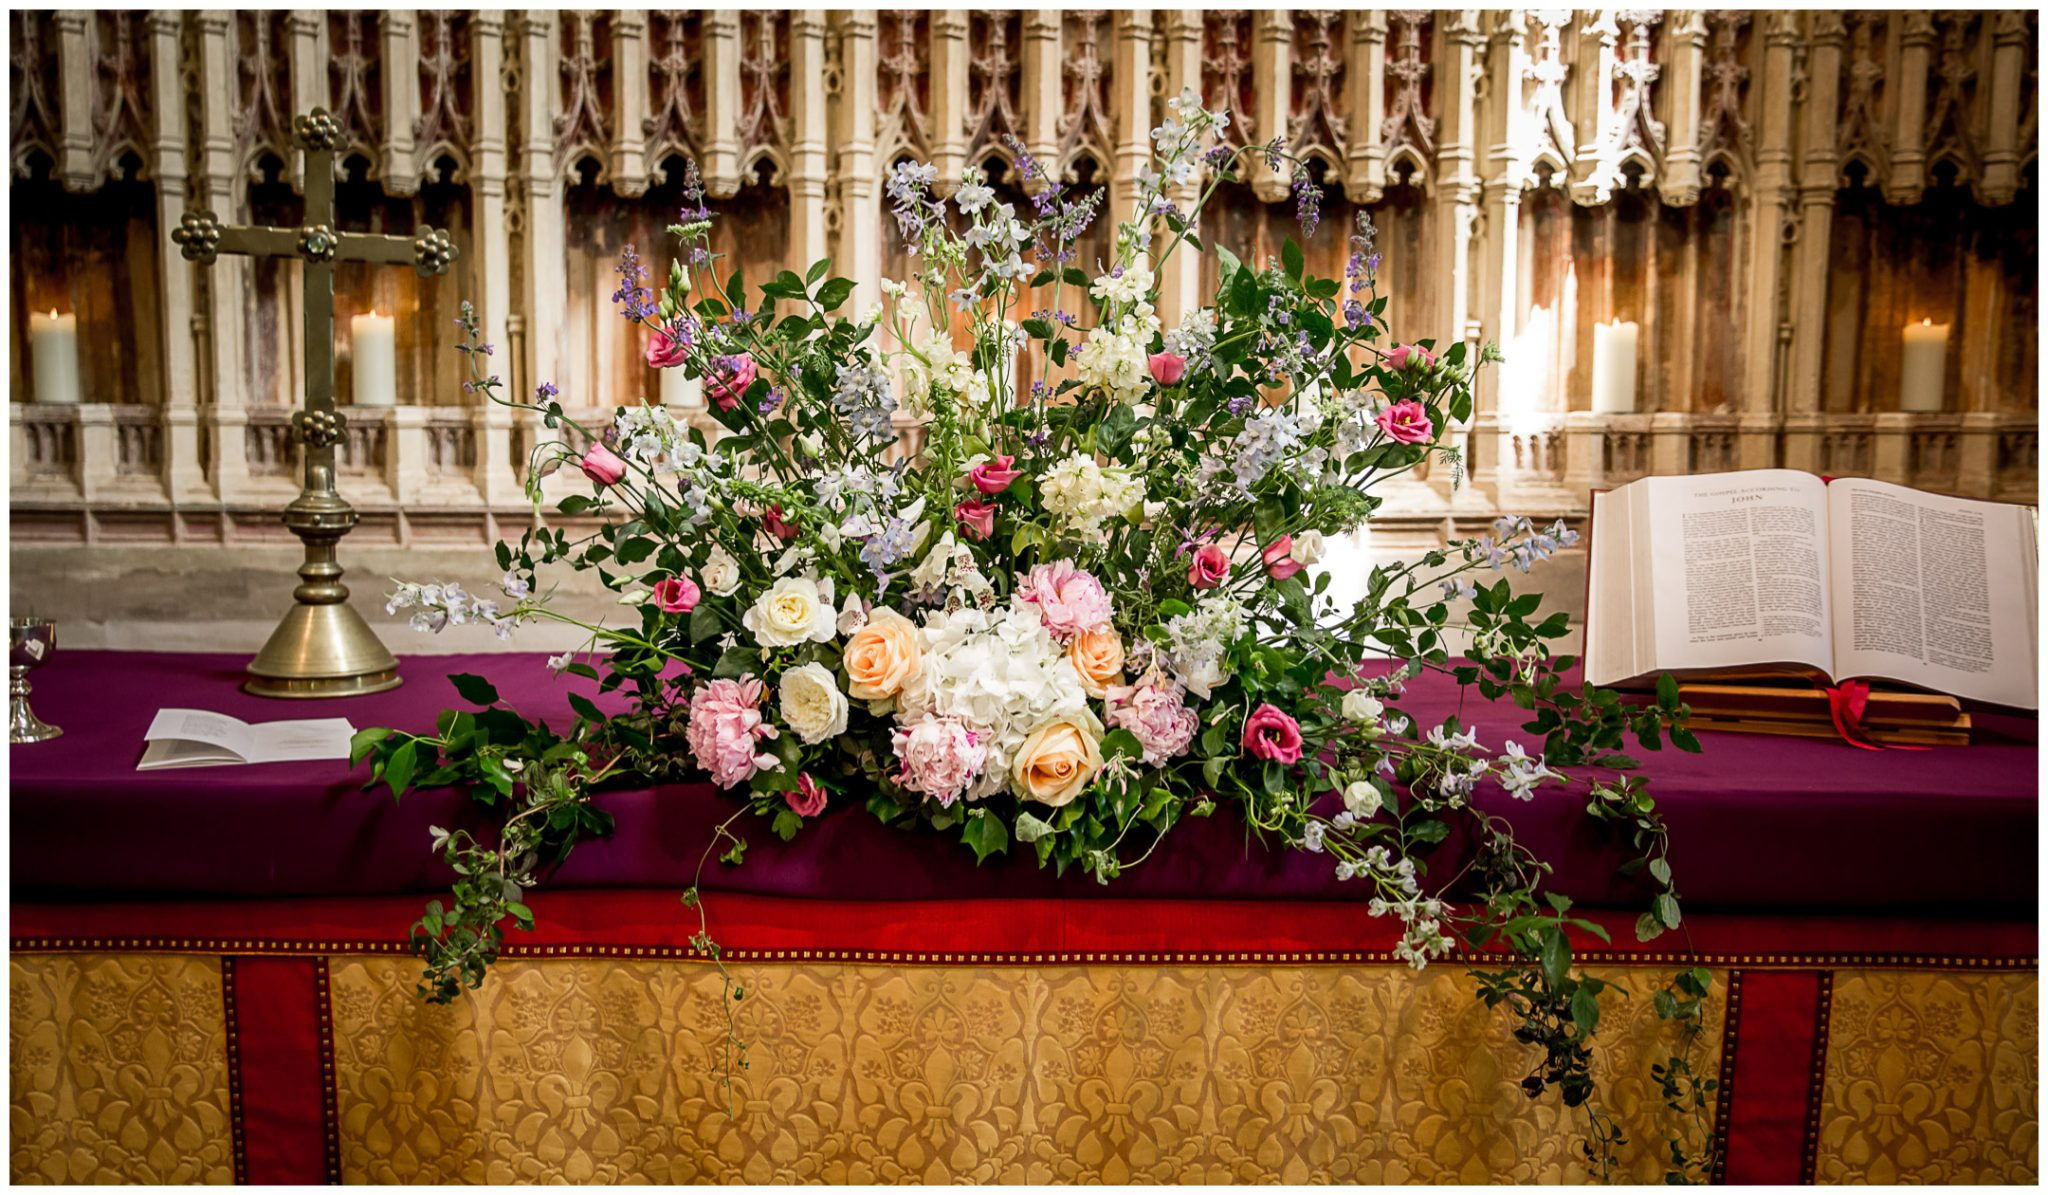 Wedding flowers on the high altar